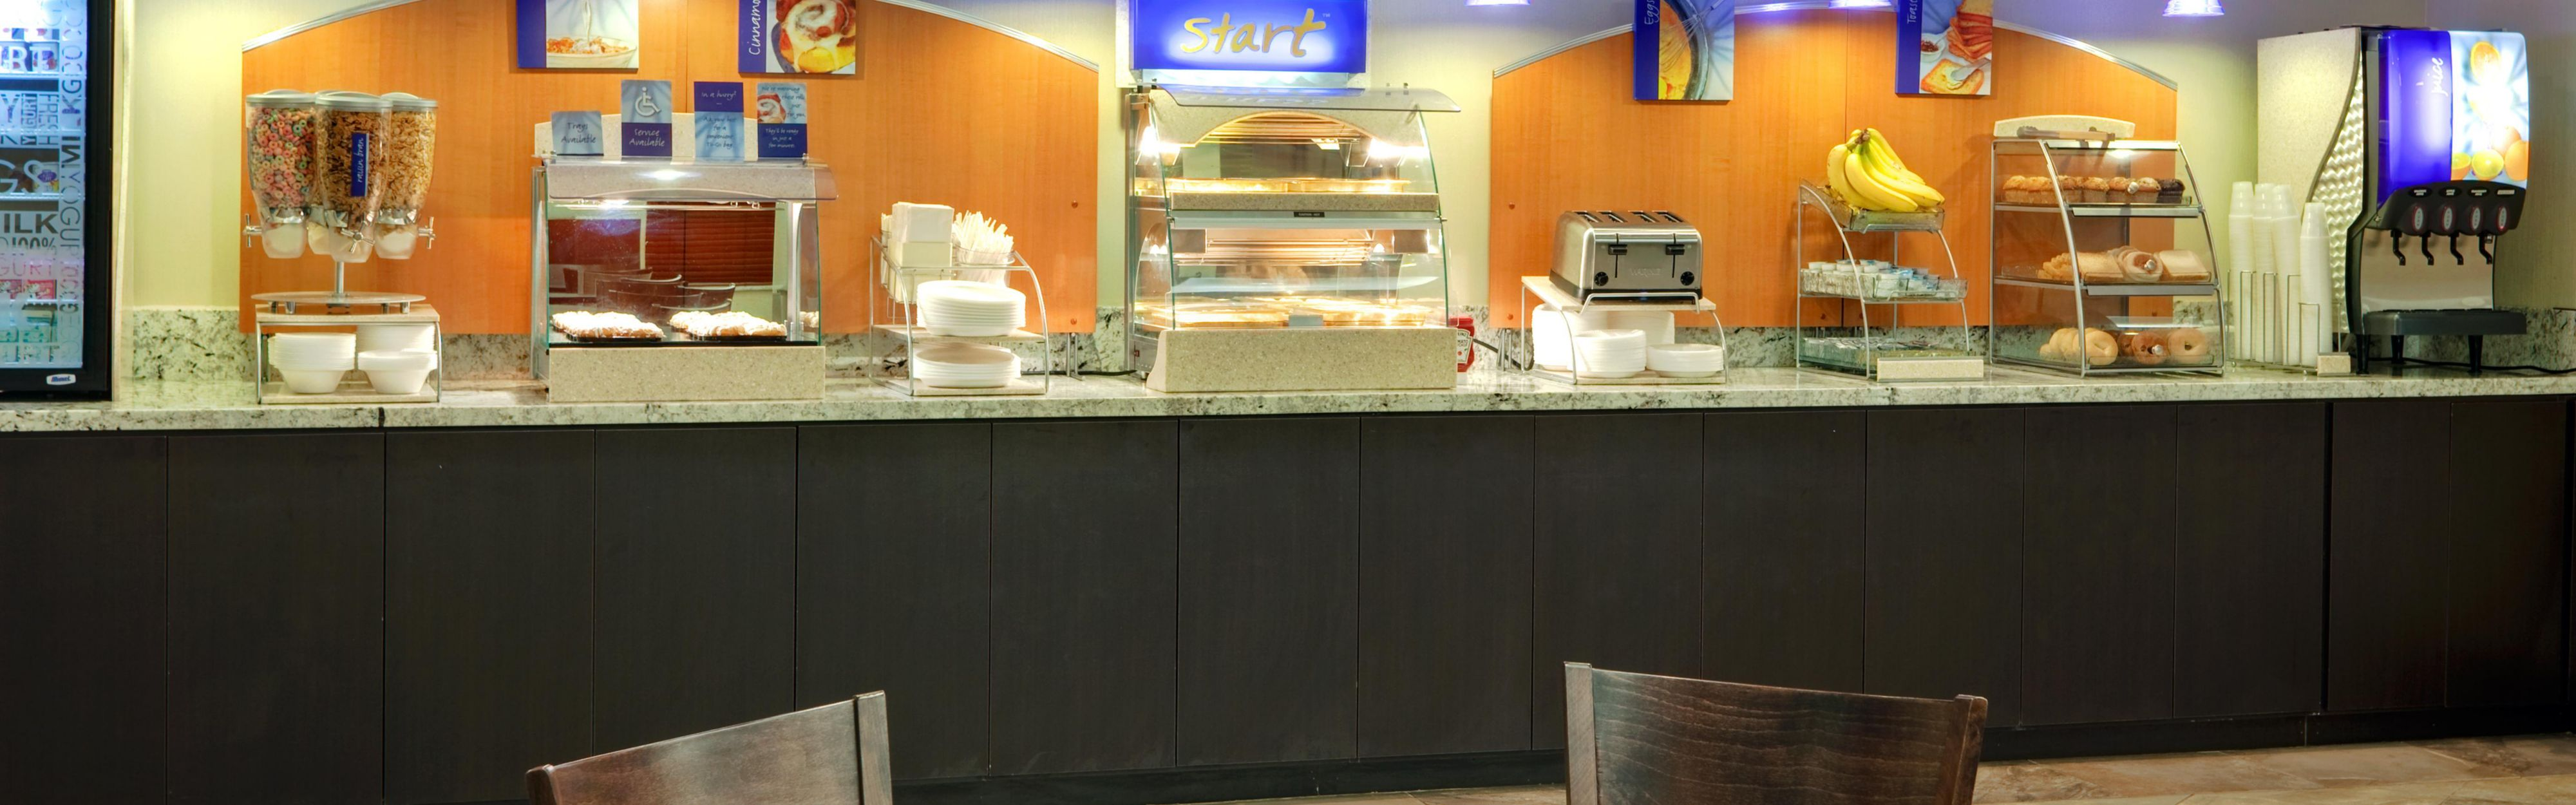 Holiday Inn Express & Suites Albuquerque Airport image 3